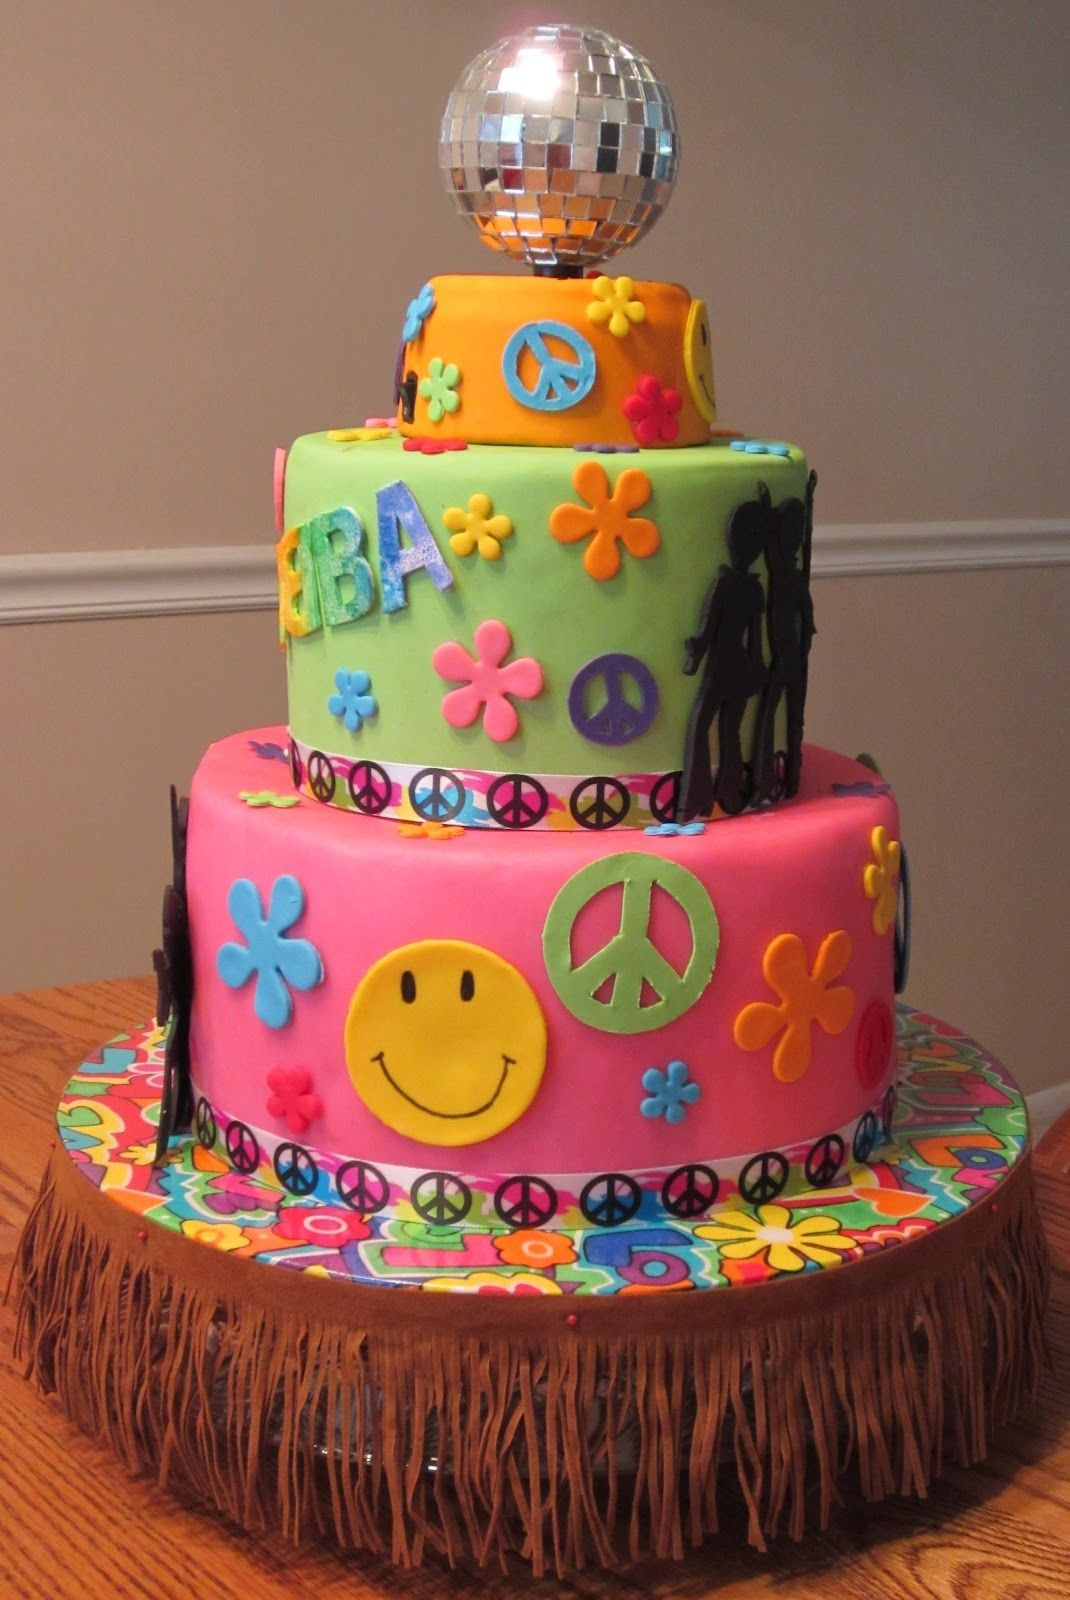 I Dreamed Of This Cake The Day B4 My 50th Bdy Only The